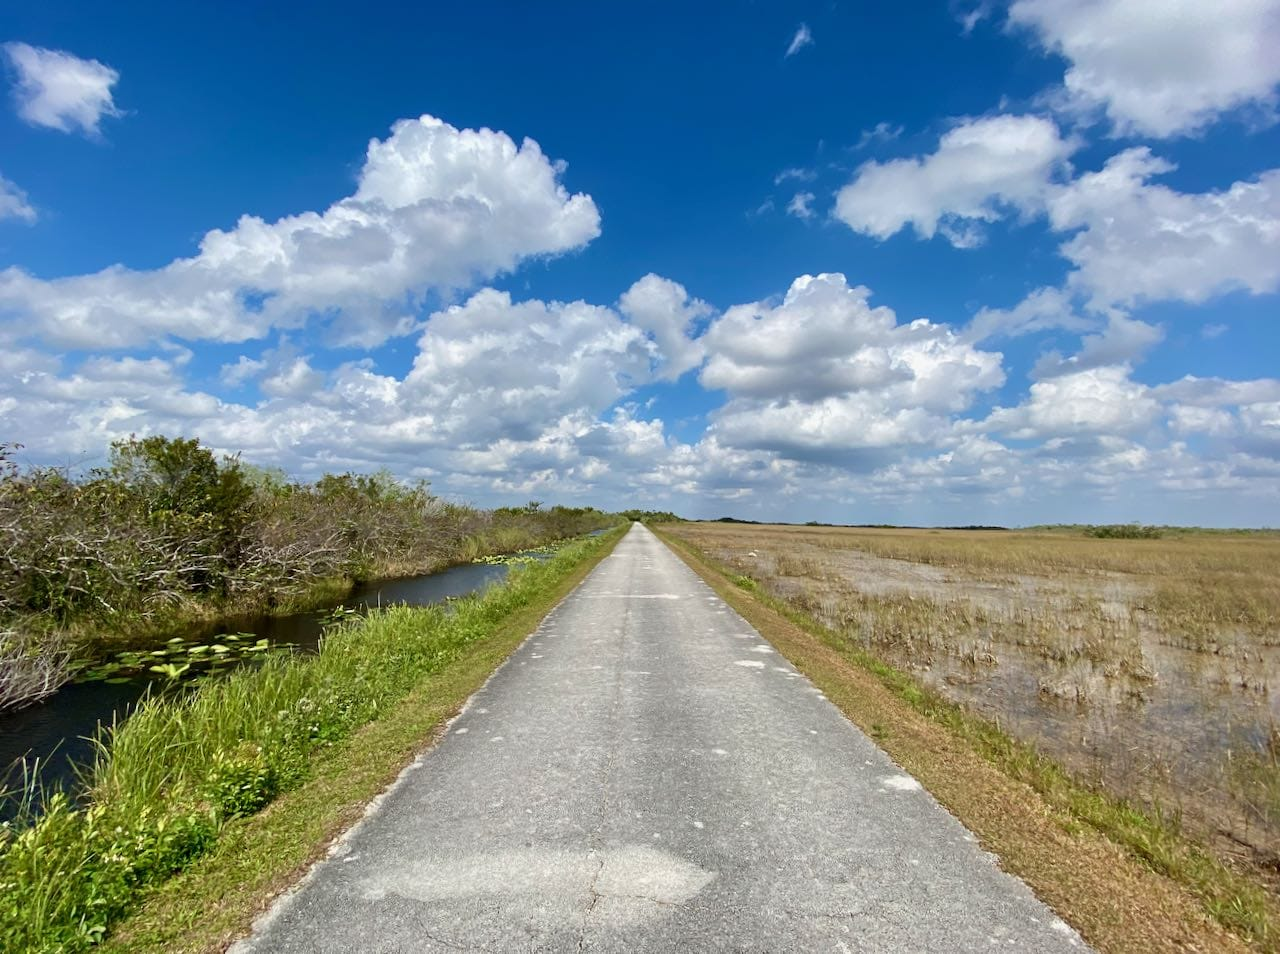 Shark Valley Everglades National Park Attractions and Places to Stop Along the Tamiami Trail/U.S. Highway 41